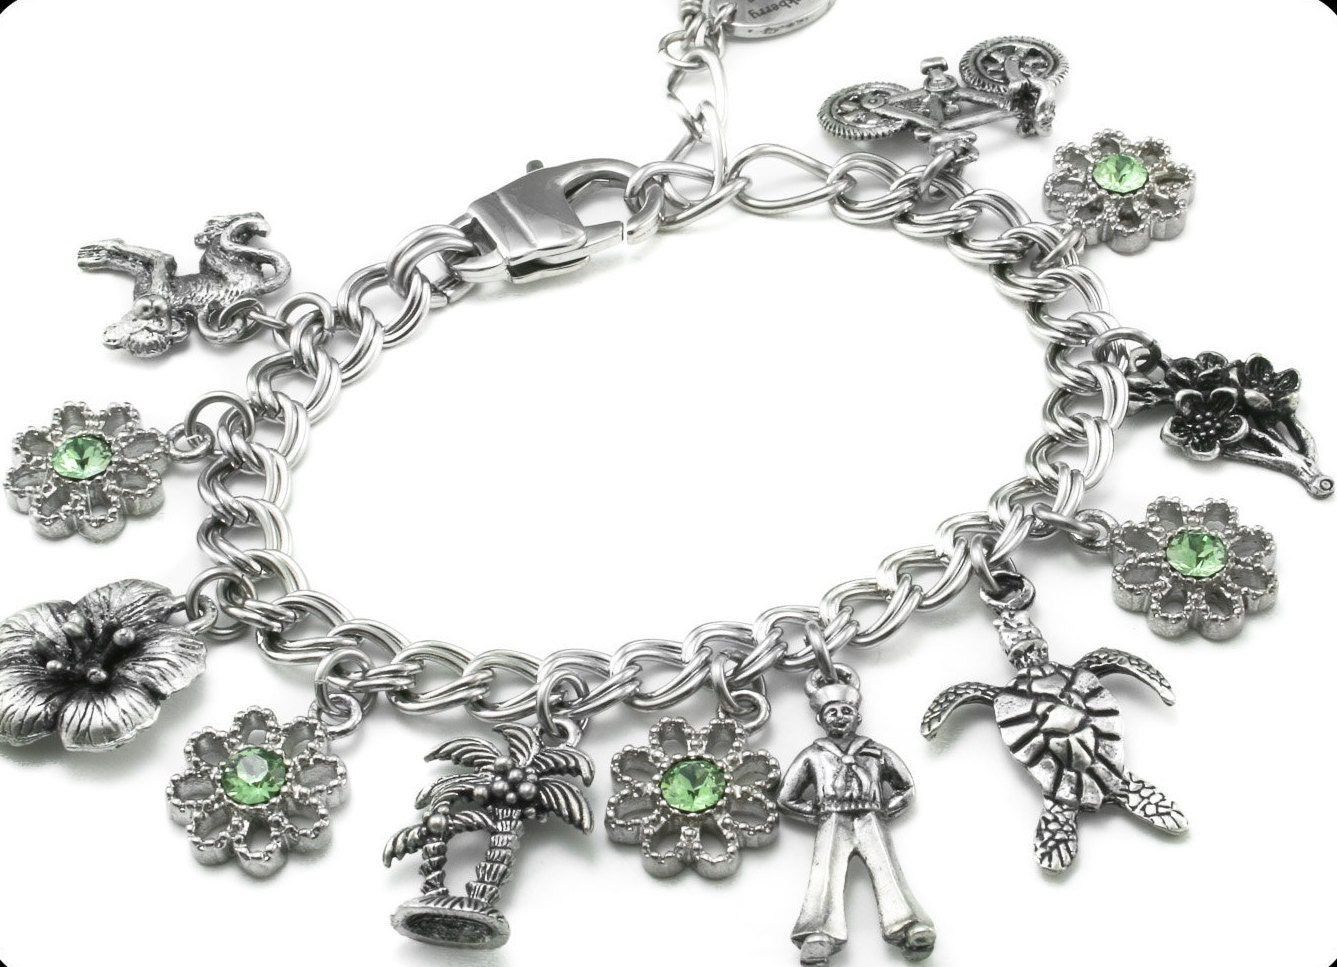 personalized starter charm bracelet with charms of your